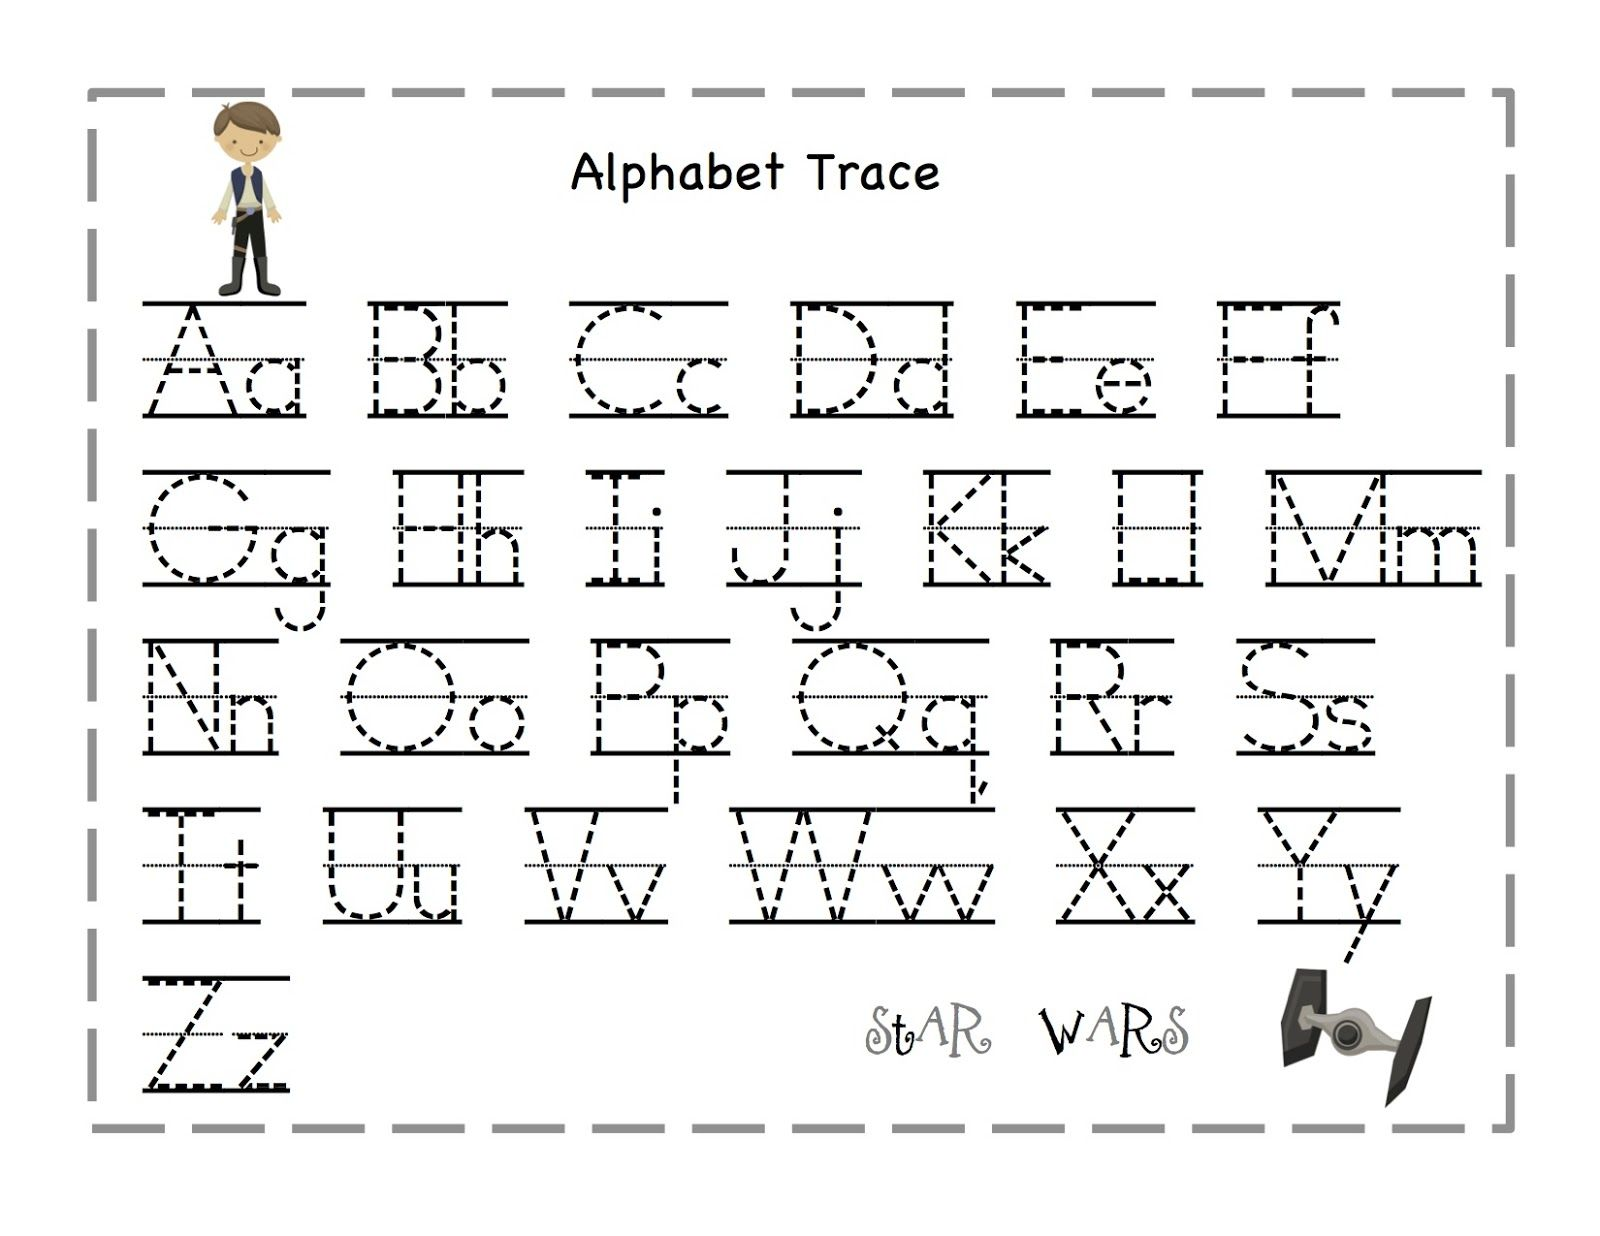 Worksheets Free Printable Alphabet Worksheets A-z free printable alphabet letter tracing worksheets angeline worksheets